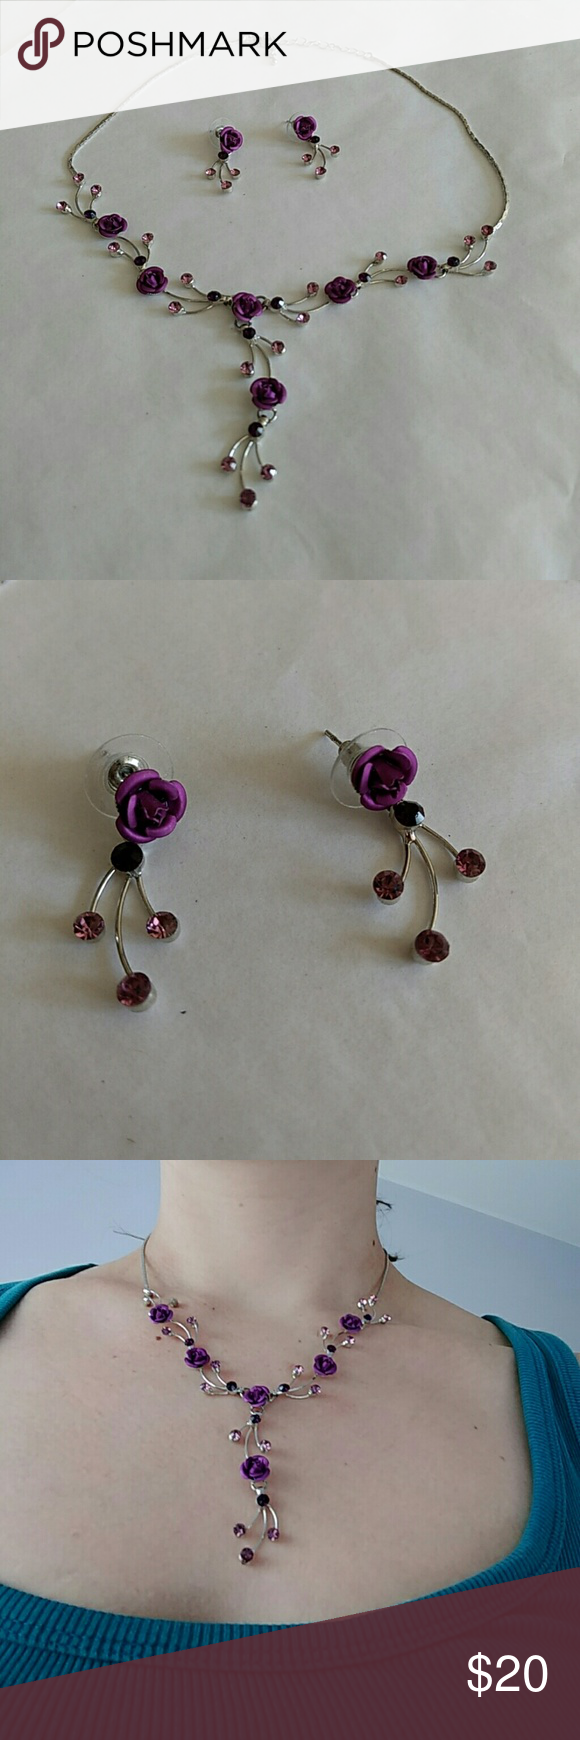 """Necklace & earring set Beautiful hand made purple flower and crystal necklace and earring set with silver lobster claw clasp  Dangle earrings are approx. 1"""" long, necklace is 16""""long, extendable to 18.5"""".  (Necklace modeled at full 18.5"""" extension.)  Like new!   Jewelry"""